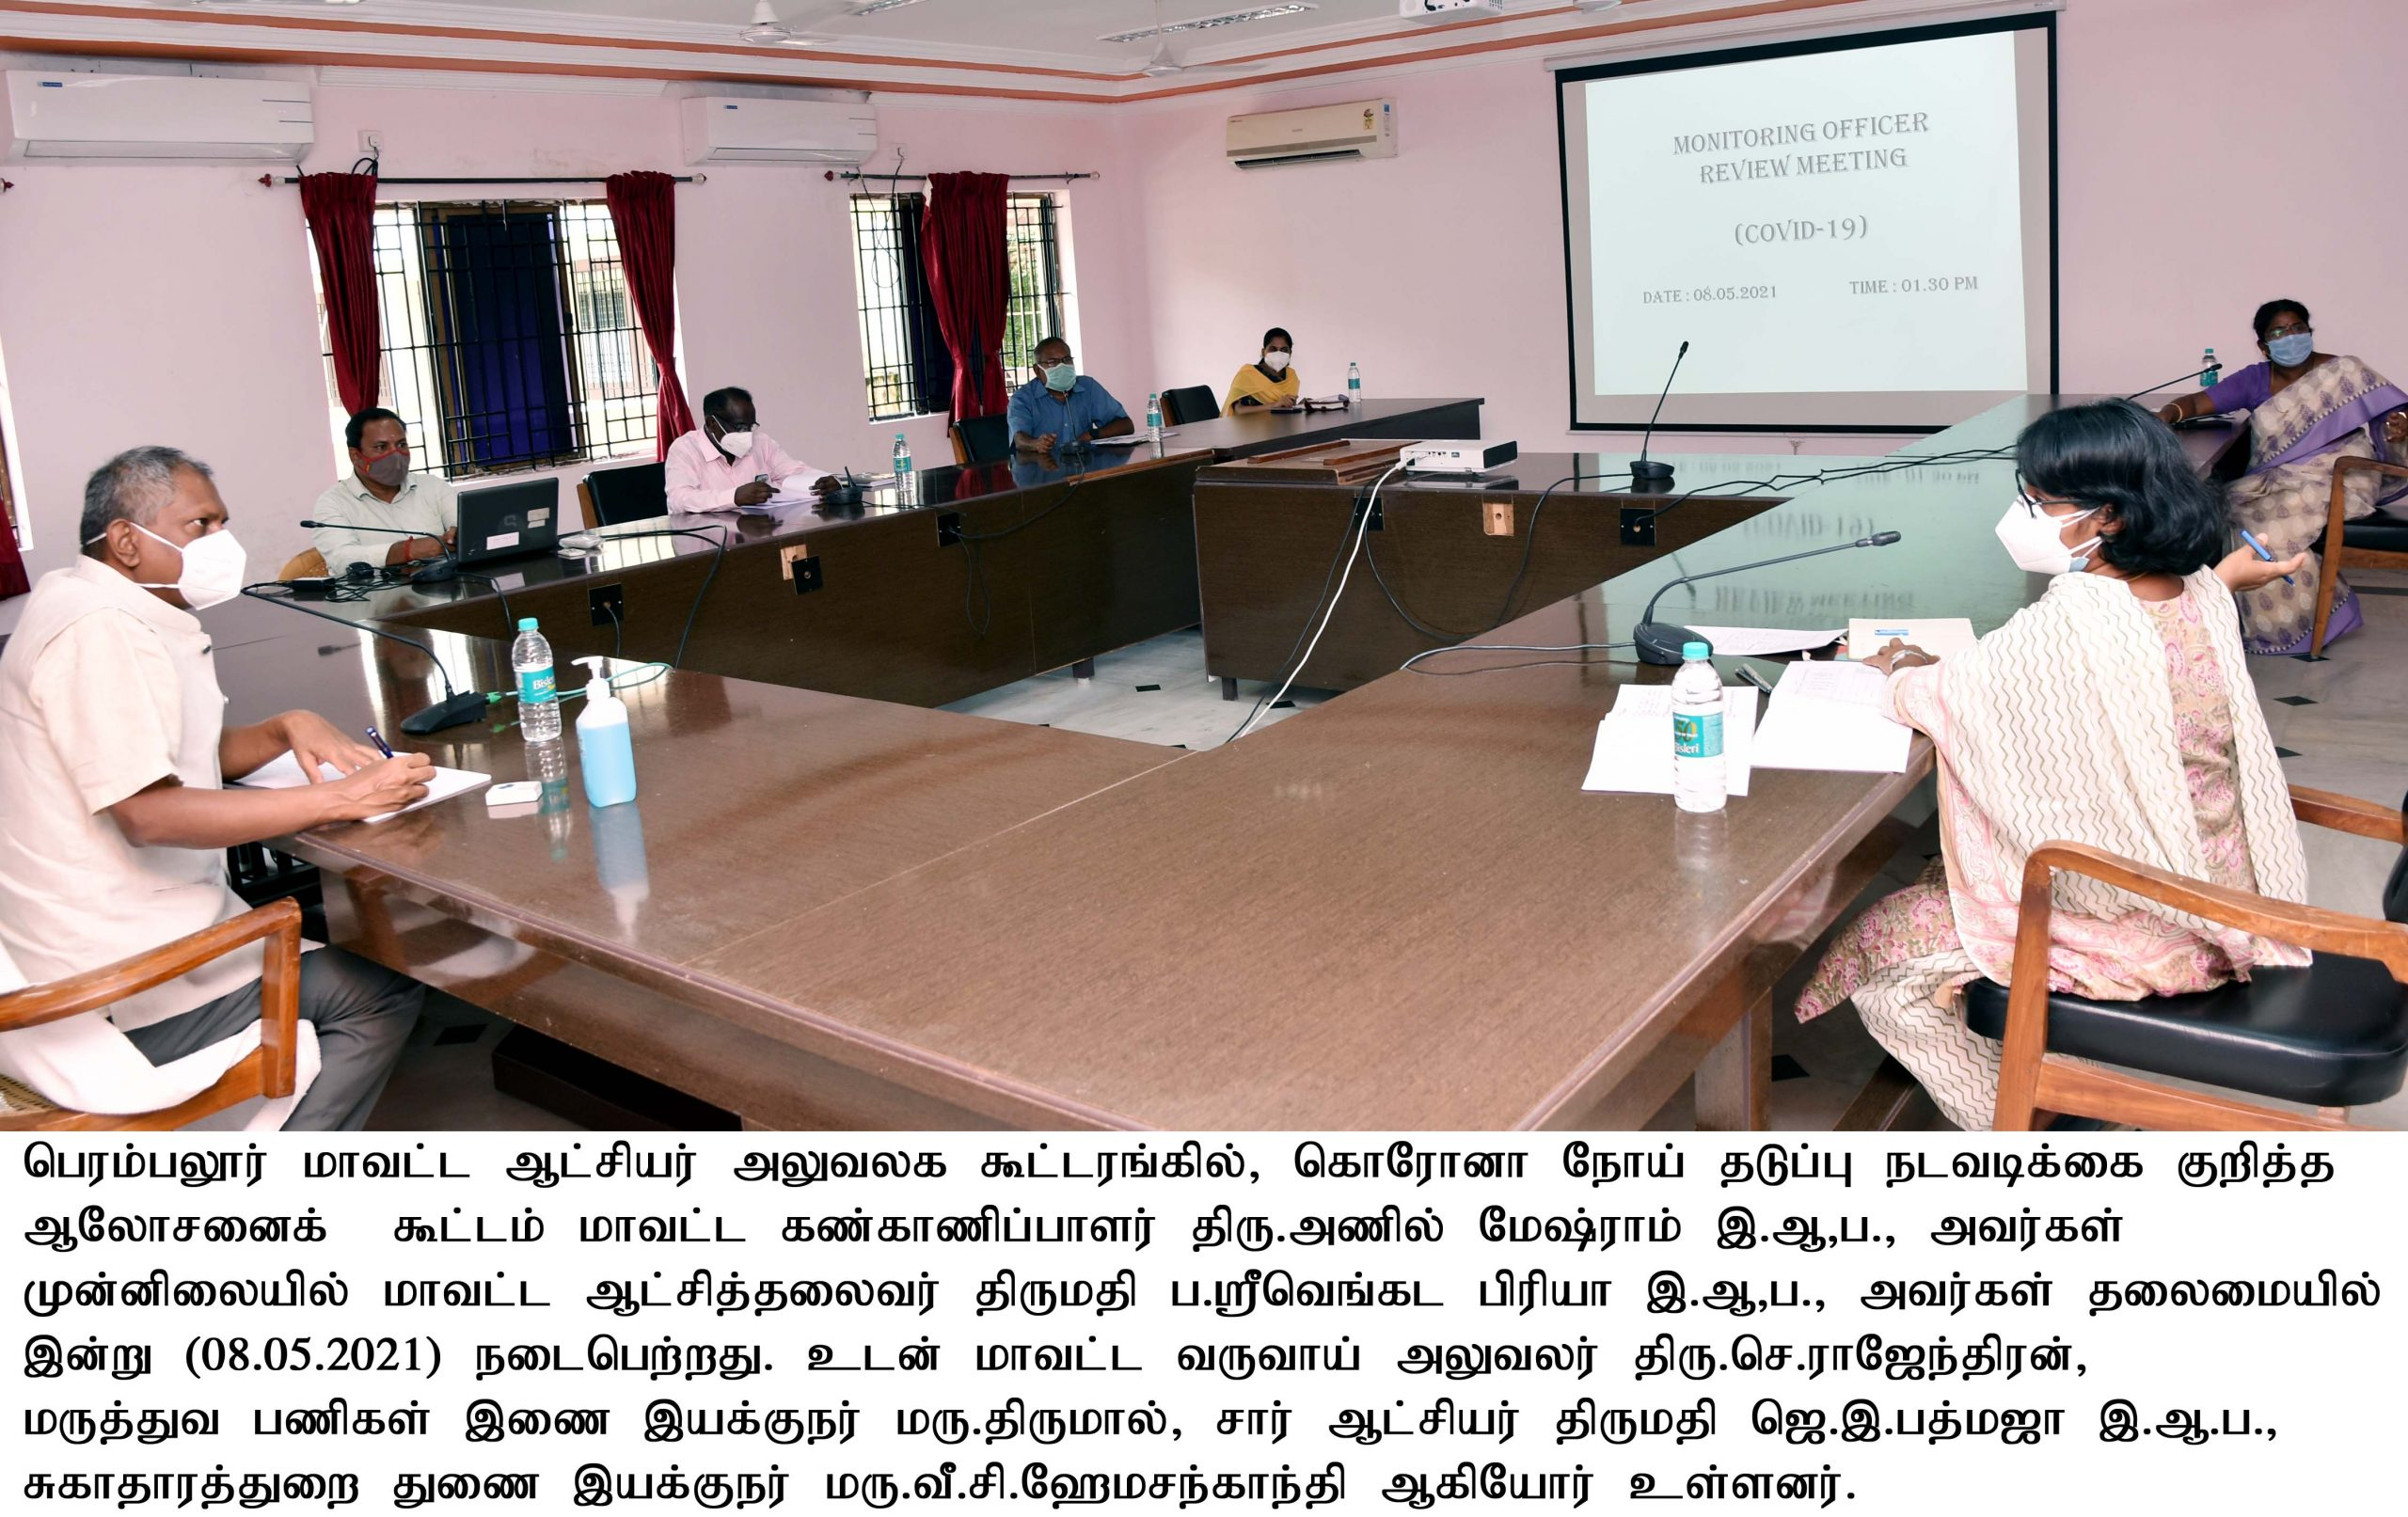 Meeting on Corona Preventive Activities was conducted in the presence of the Monitoring Officer - 08.05.2021